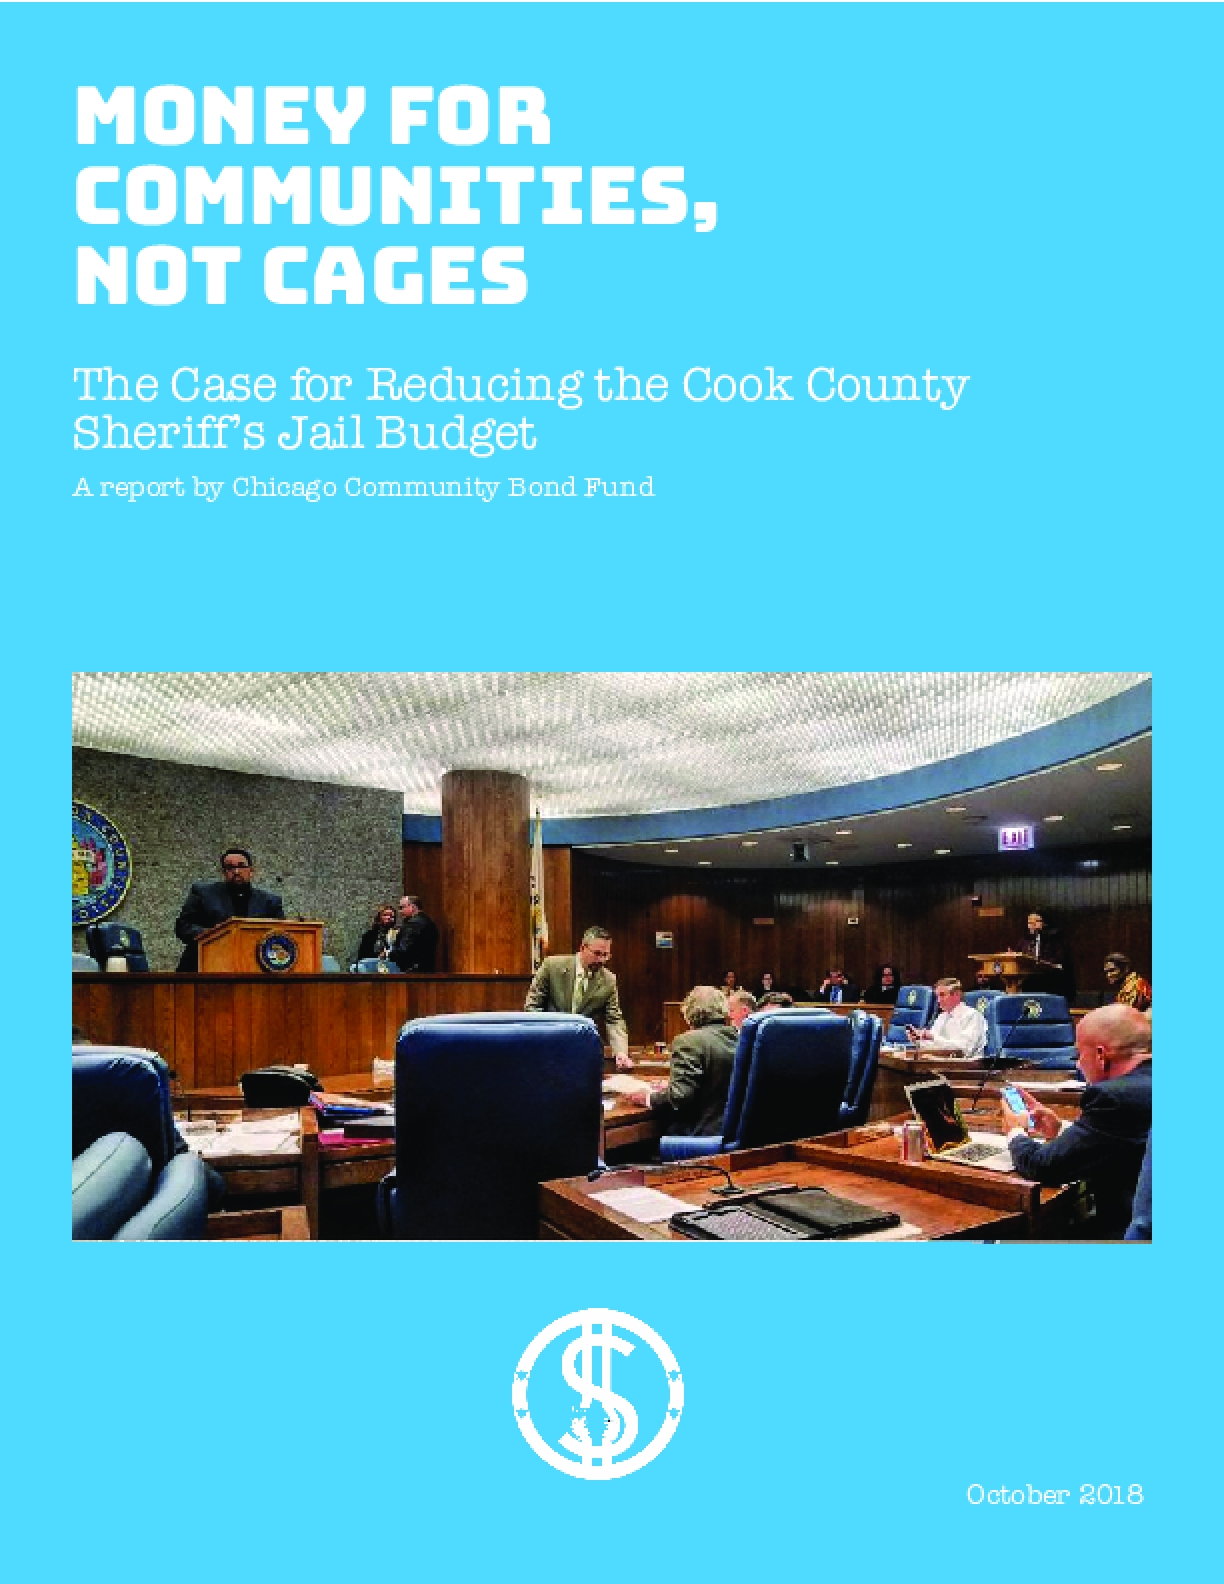 Money for Communities, Not Cages: The Case for Reducing the Cook County Sheriff's Jail Budget